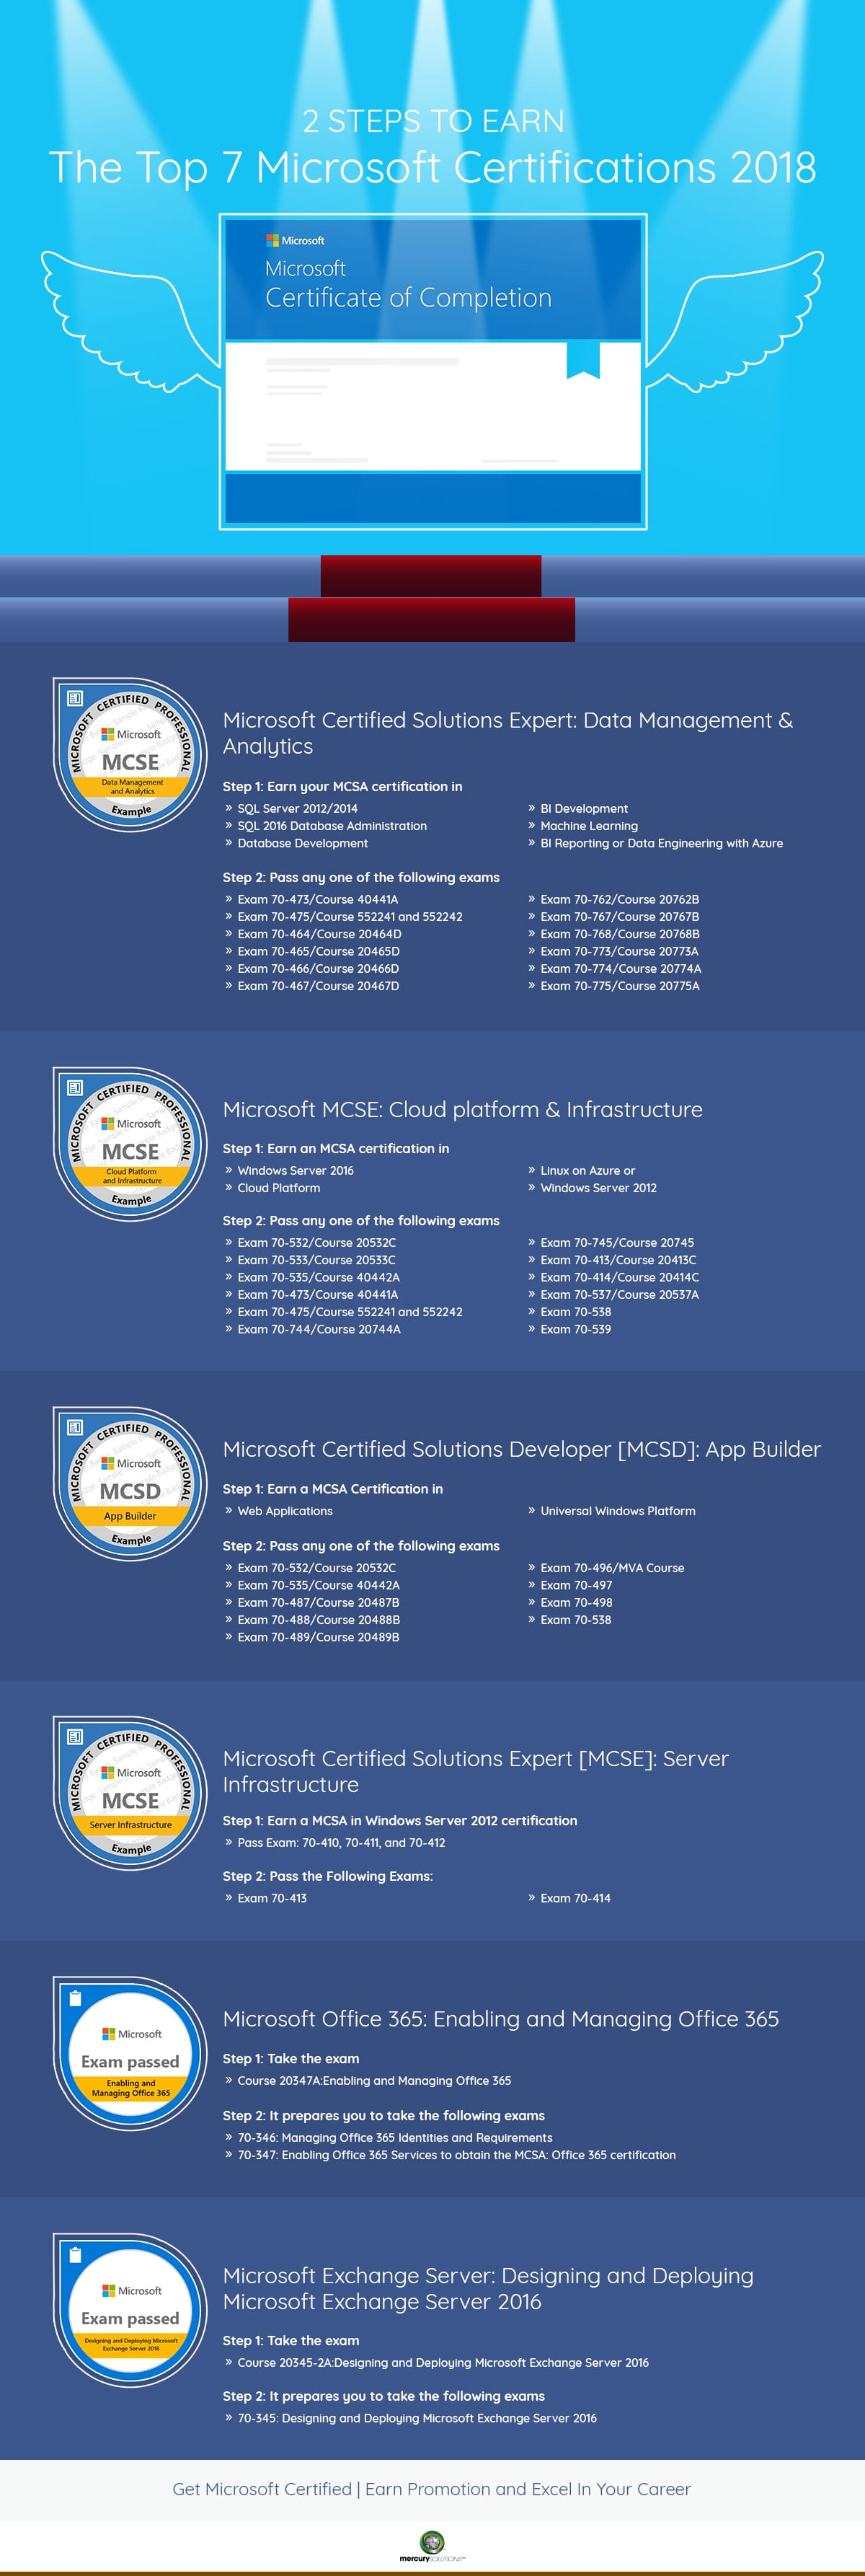 Create A Business Impact With These 7 Microsoft Certifications